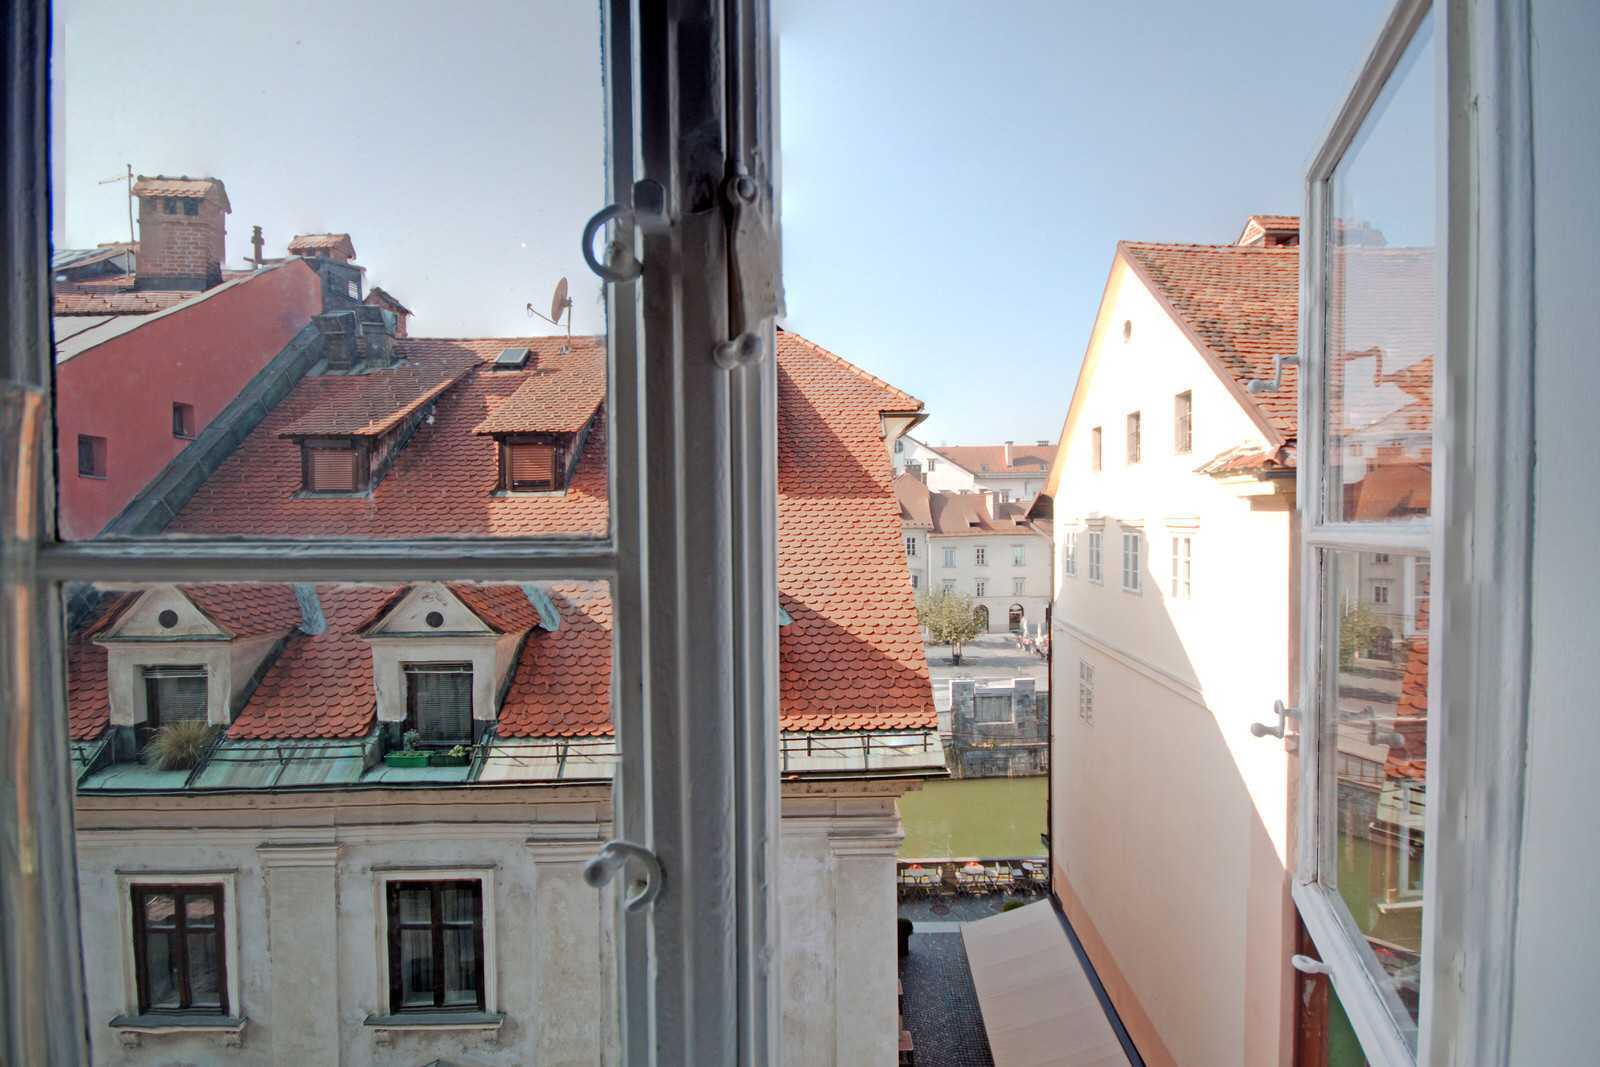 The apartment has great views of the Ljubljanica river and Ljubljana rooftops.